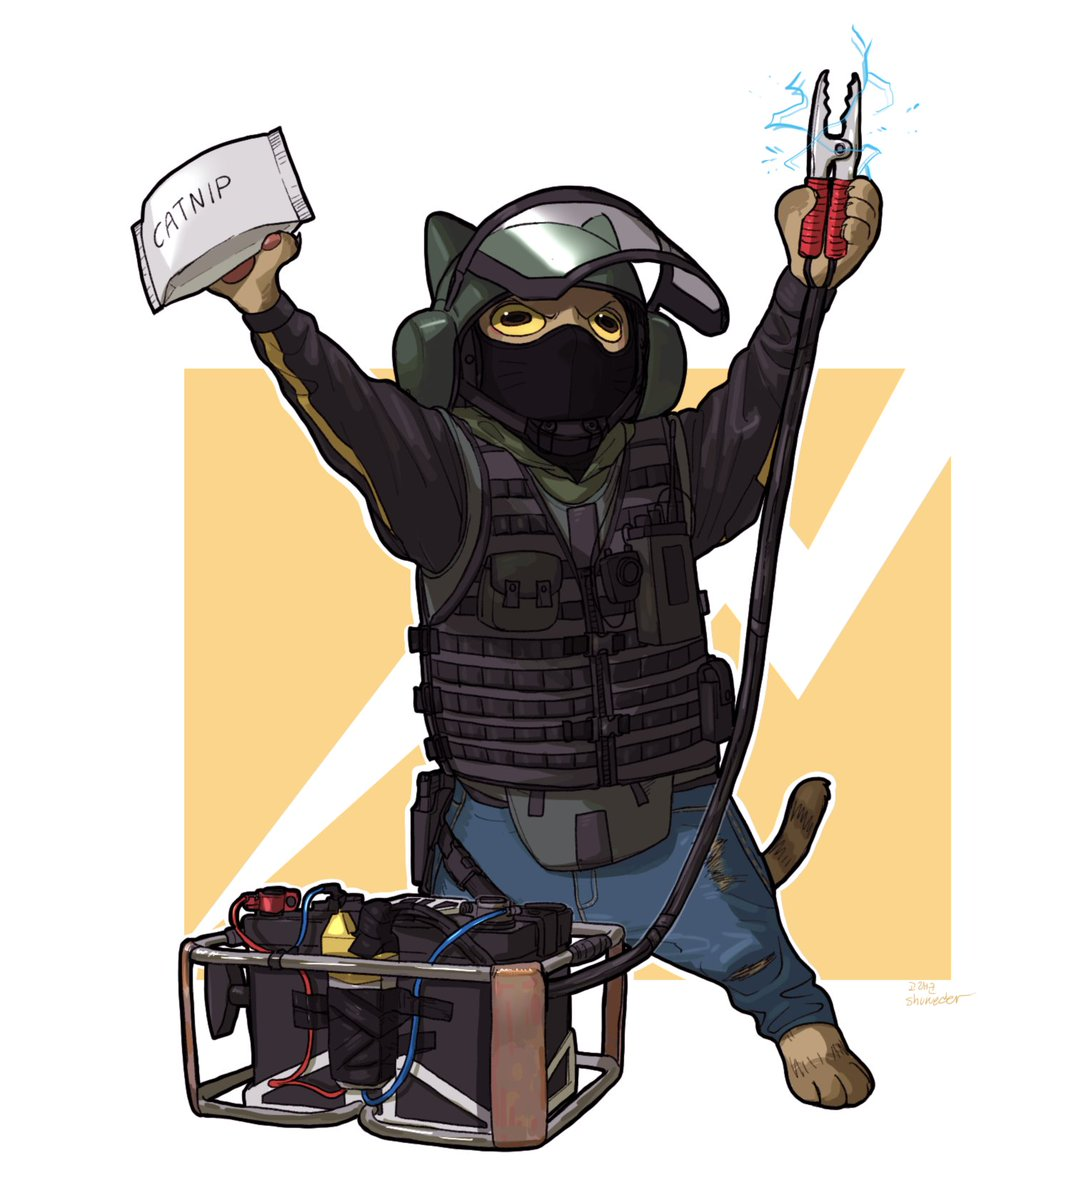 rainbow six siege on twitter the meowperators are back and bandit